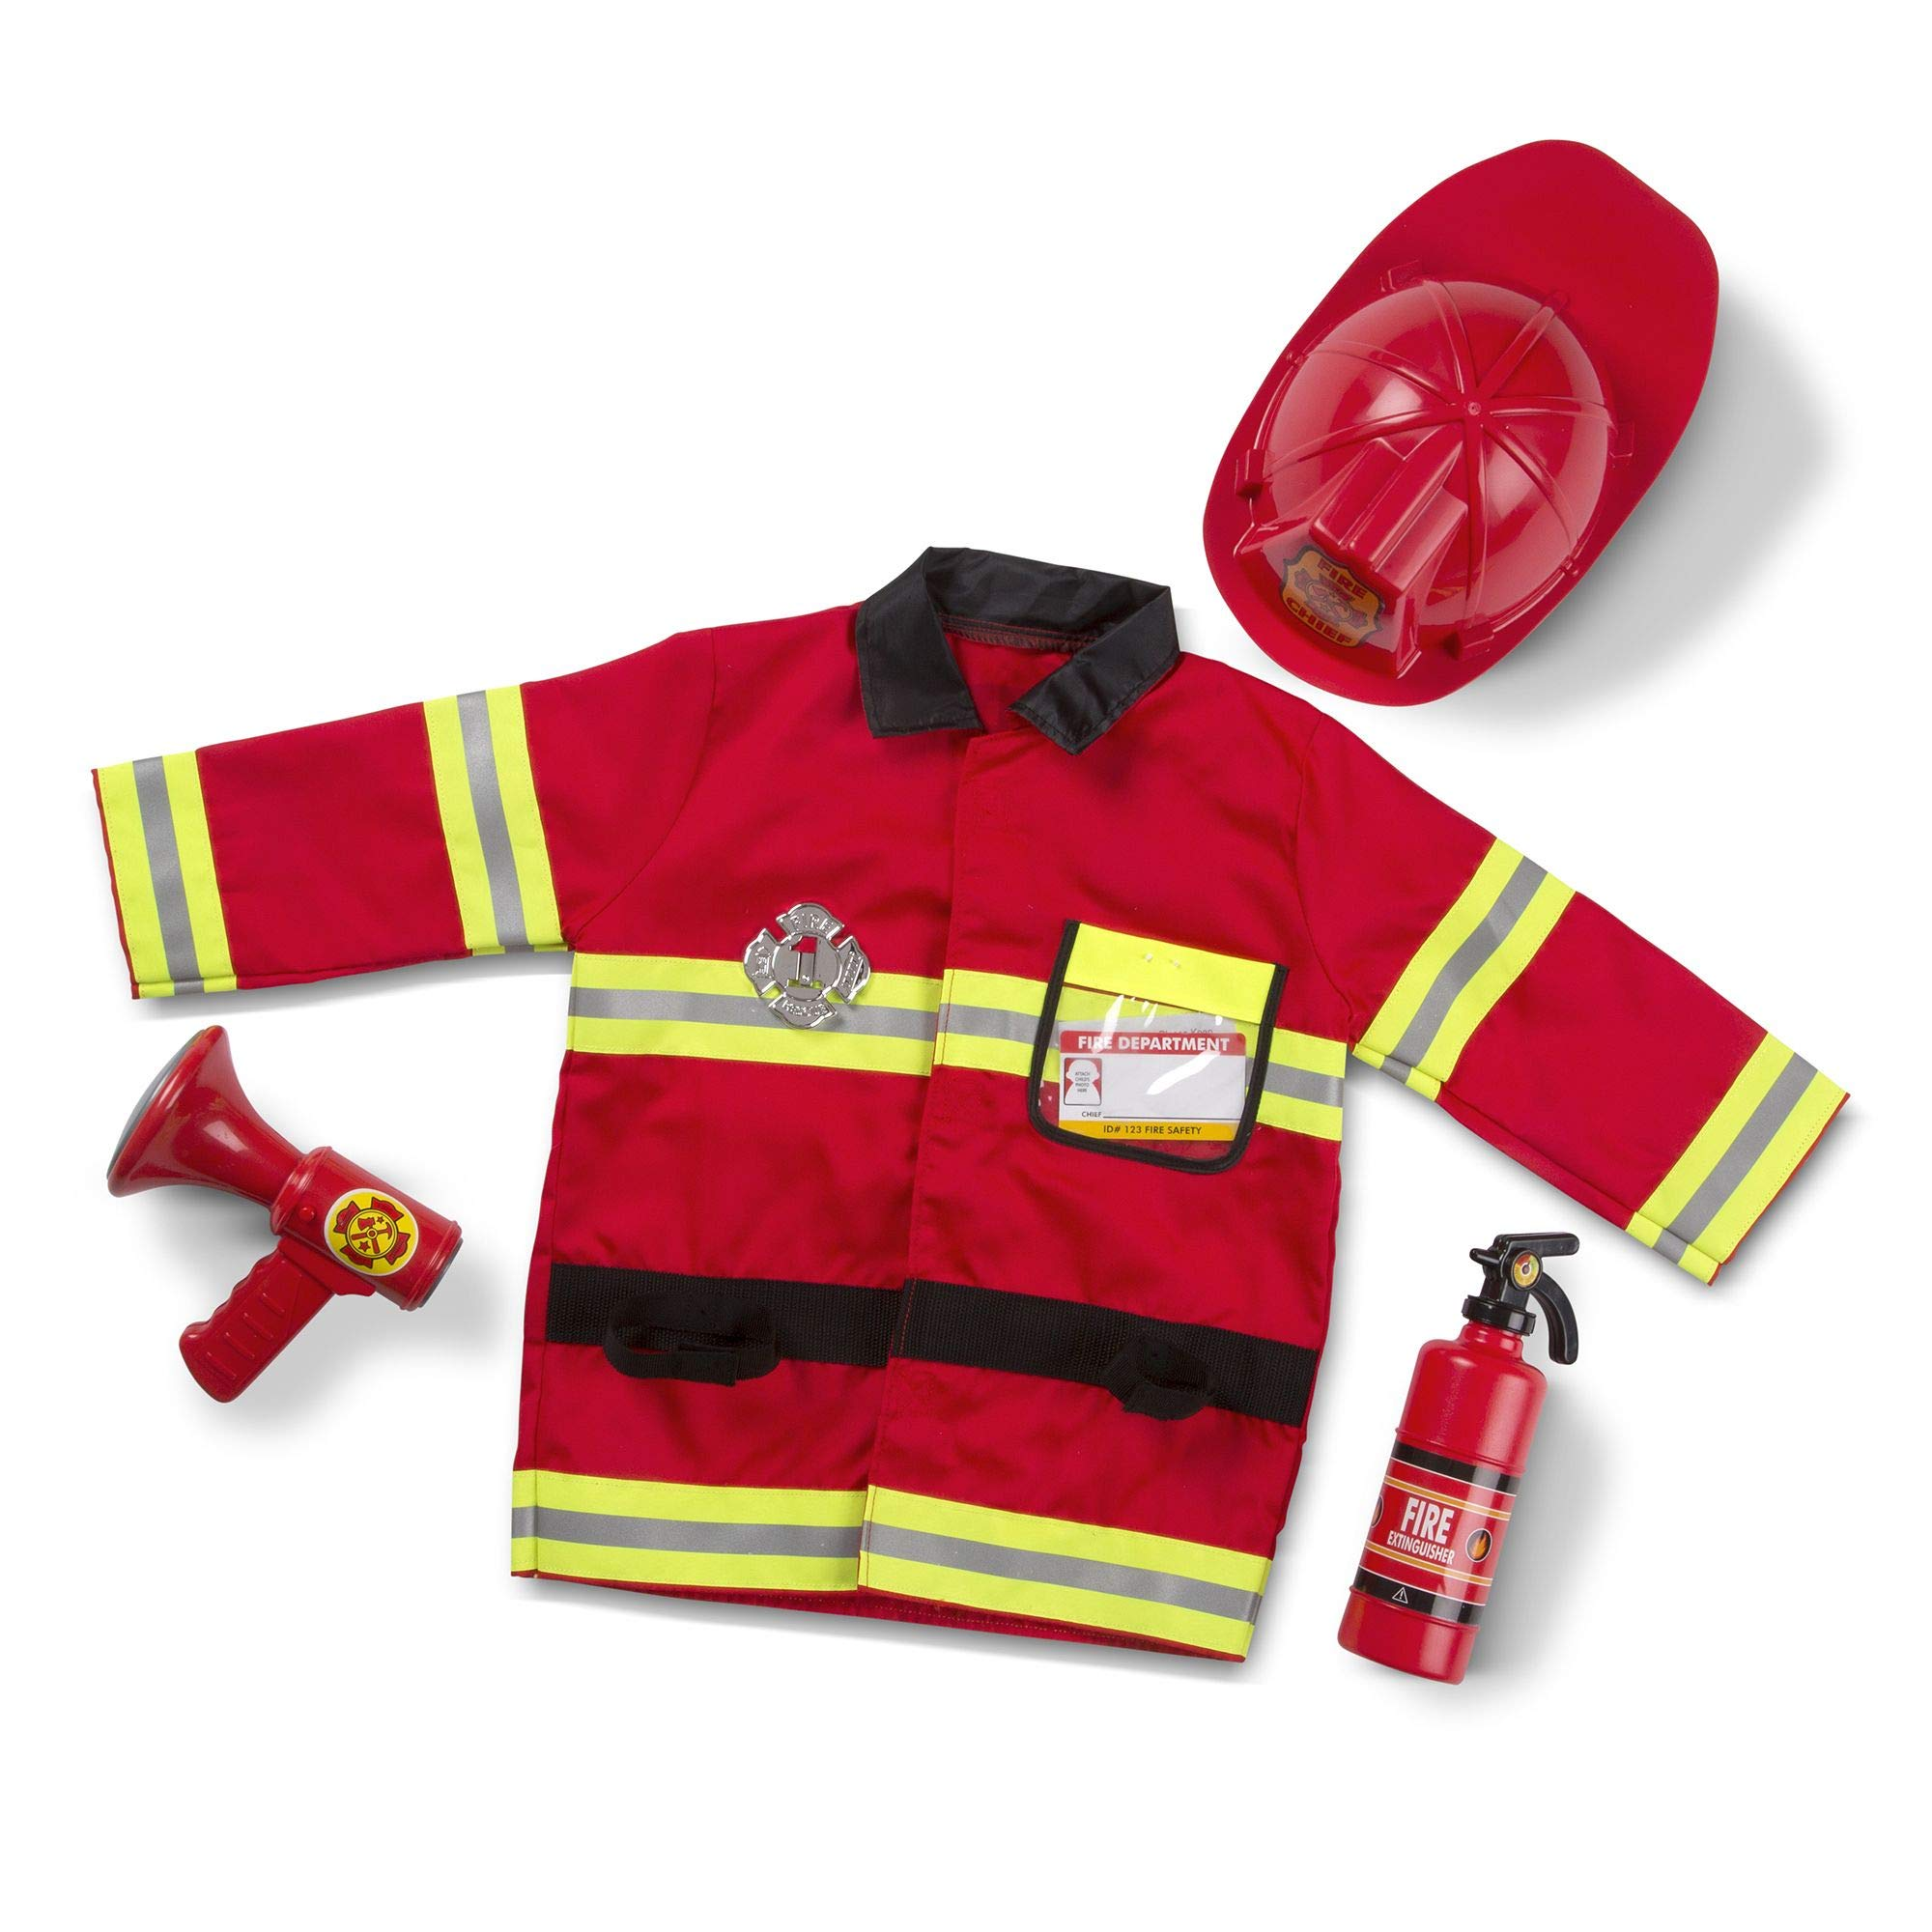 Melissa & Doug Fire Chief Role Play Costume Set, Pretend Play, Frustration-Free Packaging, Bright Red, 17.5'' H x 24'' W x 2'' L by Melissa & Doug (Image #3)